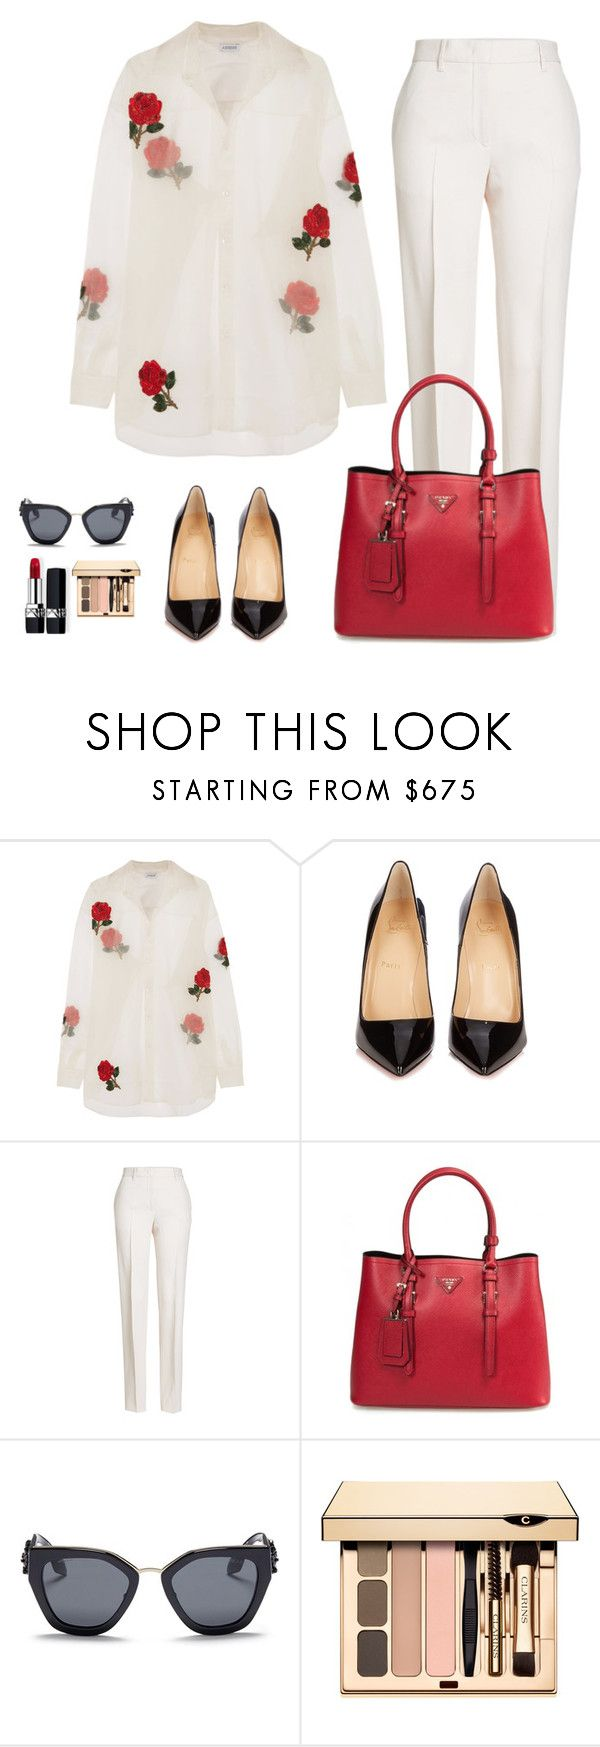 """Business look inspiration"" by monika1555 on Polyvore featuring Ashish, Christian Louboutin, Jil Sander, Prada and Christian Dior"